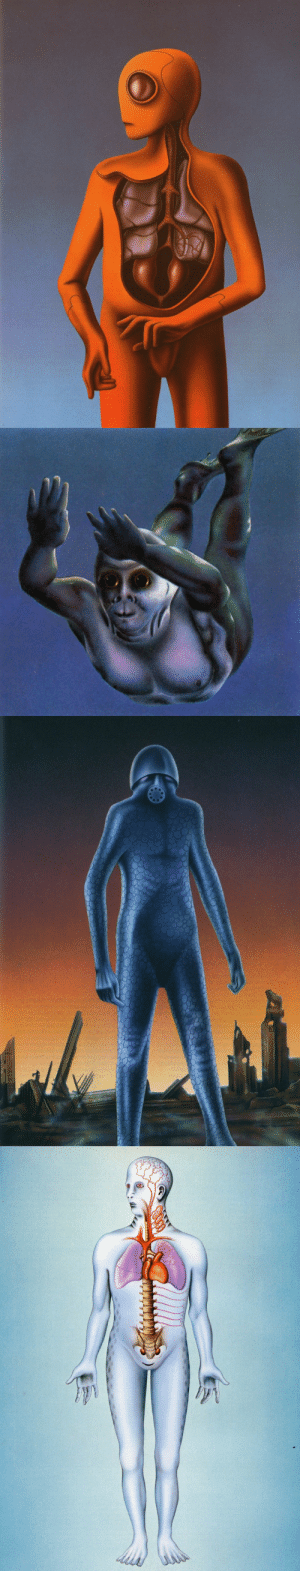 talesfromweirdland:Illustrations of evolutionary possibilities from the book, Future Man (1984): man genetically modified to live underwater (images 2 and 4), in space (image 1), and as a hardened war machine (3).: talesfromweirdland:Illustrations of evolutionary possibilities from the book, Future Man (1984): man genetically modified to live underwater (images 2 and 4), in space (image 1), and as a hardened war machine (3).